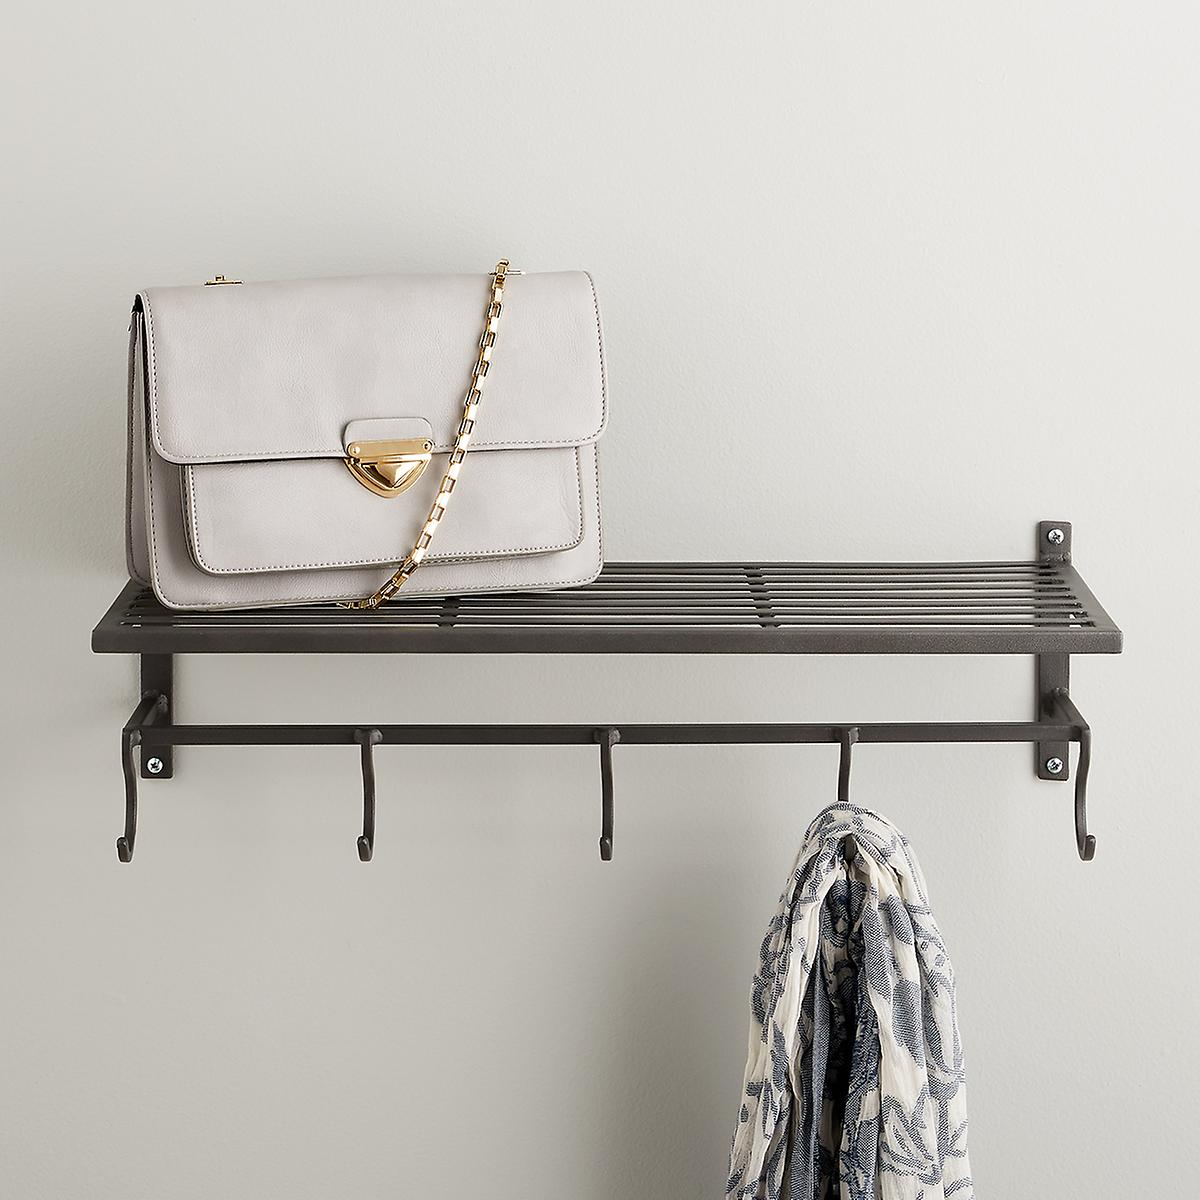 Pewter Ledge Shelf with Hooks